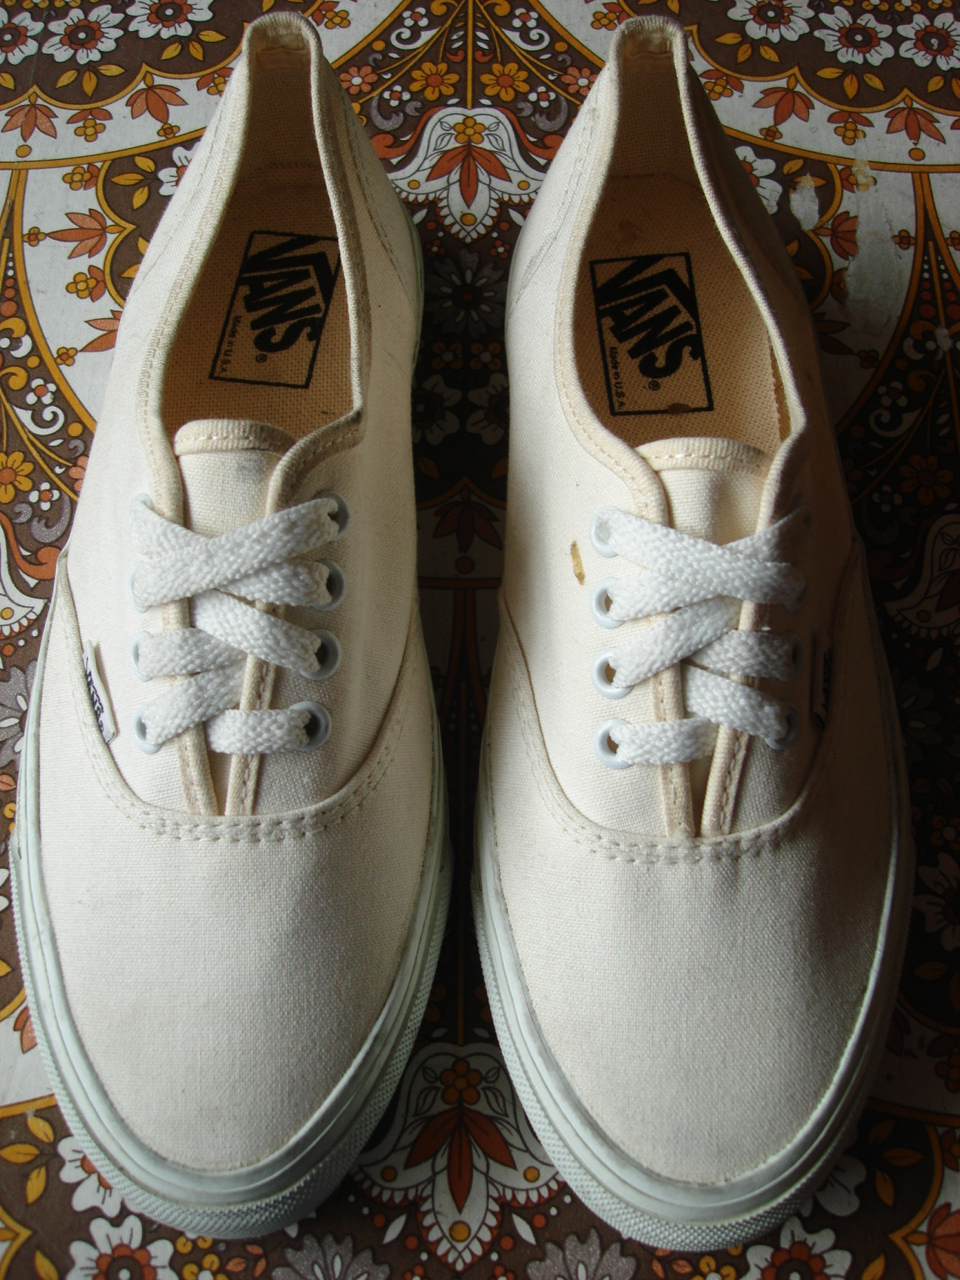 0933bce869 vintage vans style  44 authentic white canvas   foxing made in usa circa  1993 new (without box) USw9 US7N UK6.5N